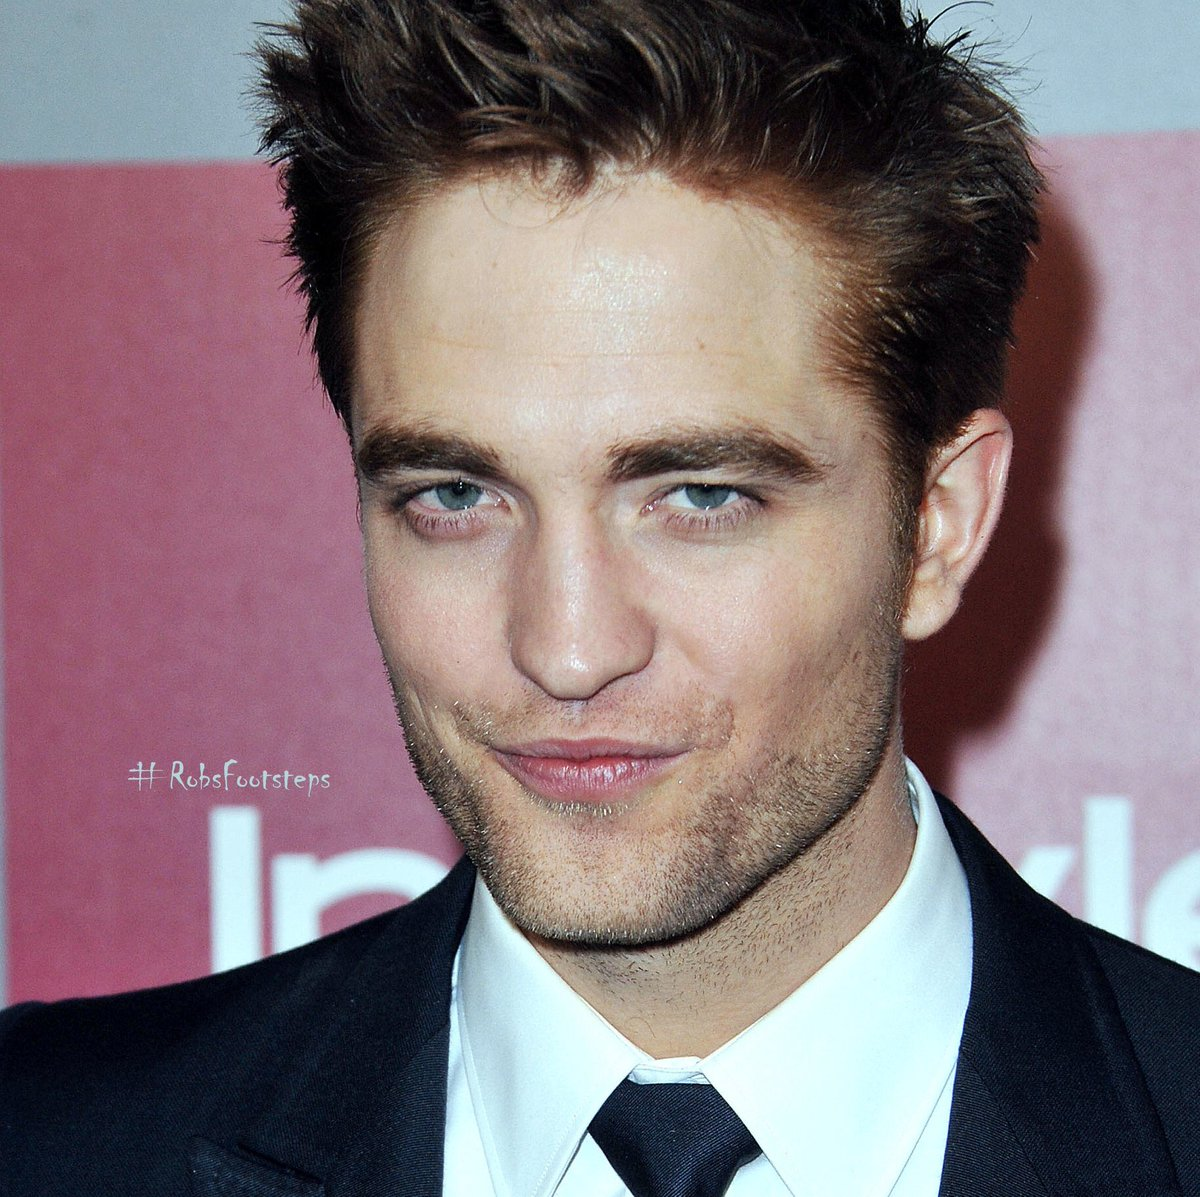 #RobertPattinson @goldenglobes InStyle after party 2010 Missing him a lot  <br>http://pic.twitter.com/exJa49jym4